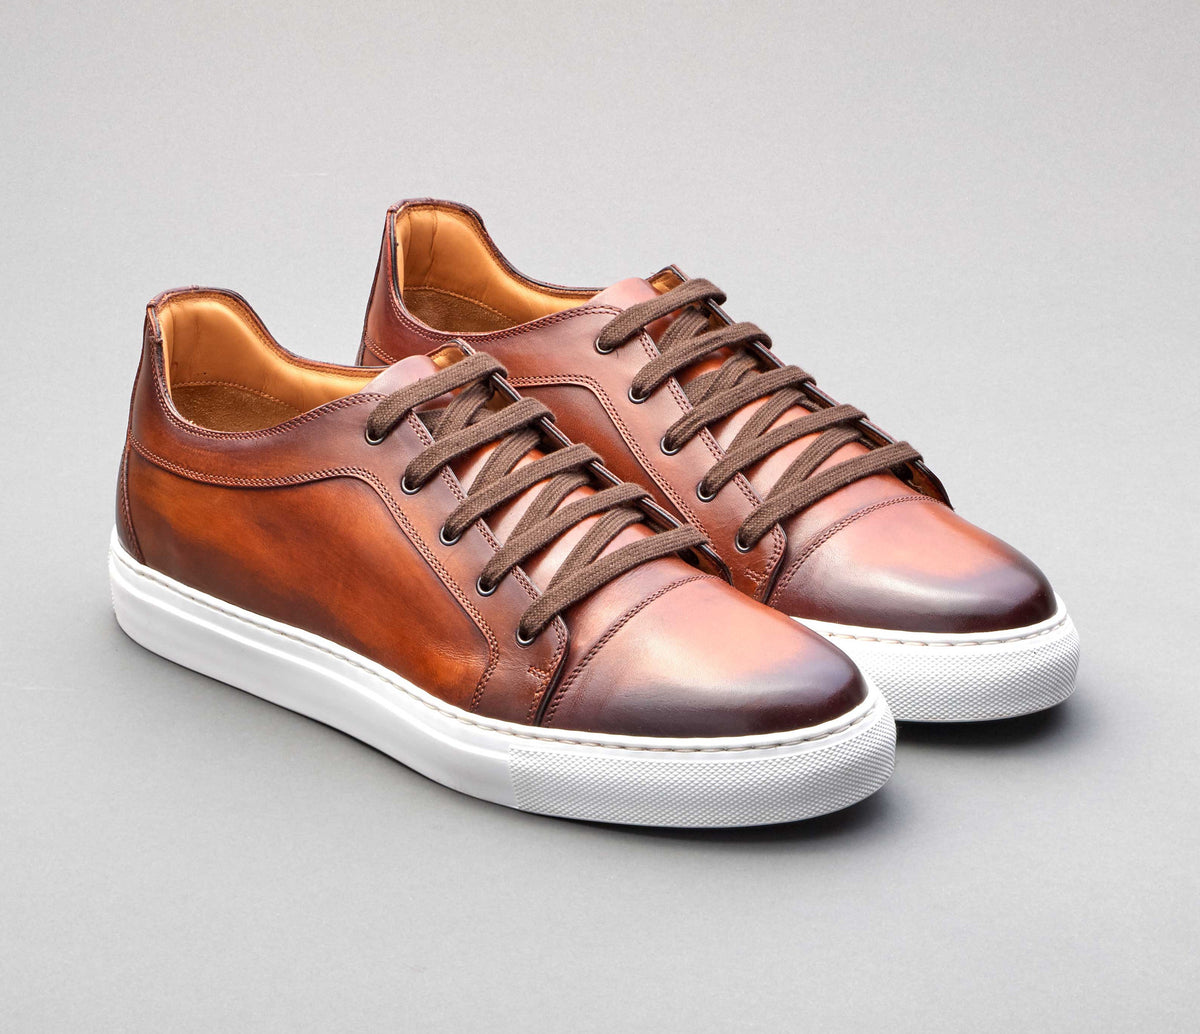 Messina Leather Deco Sneaker in Melograno